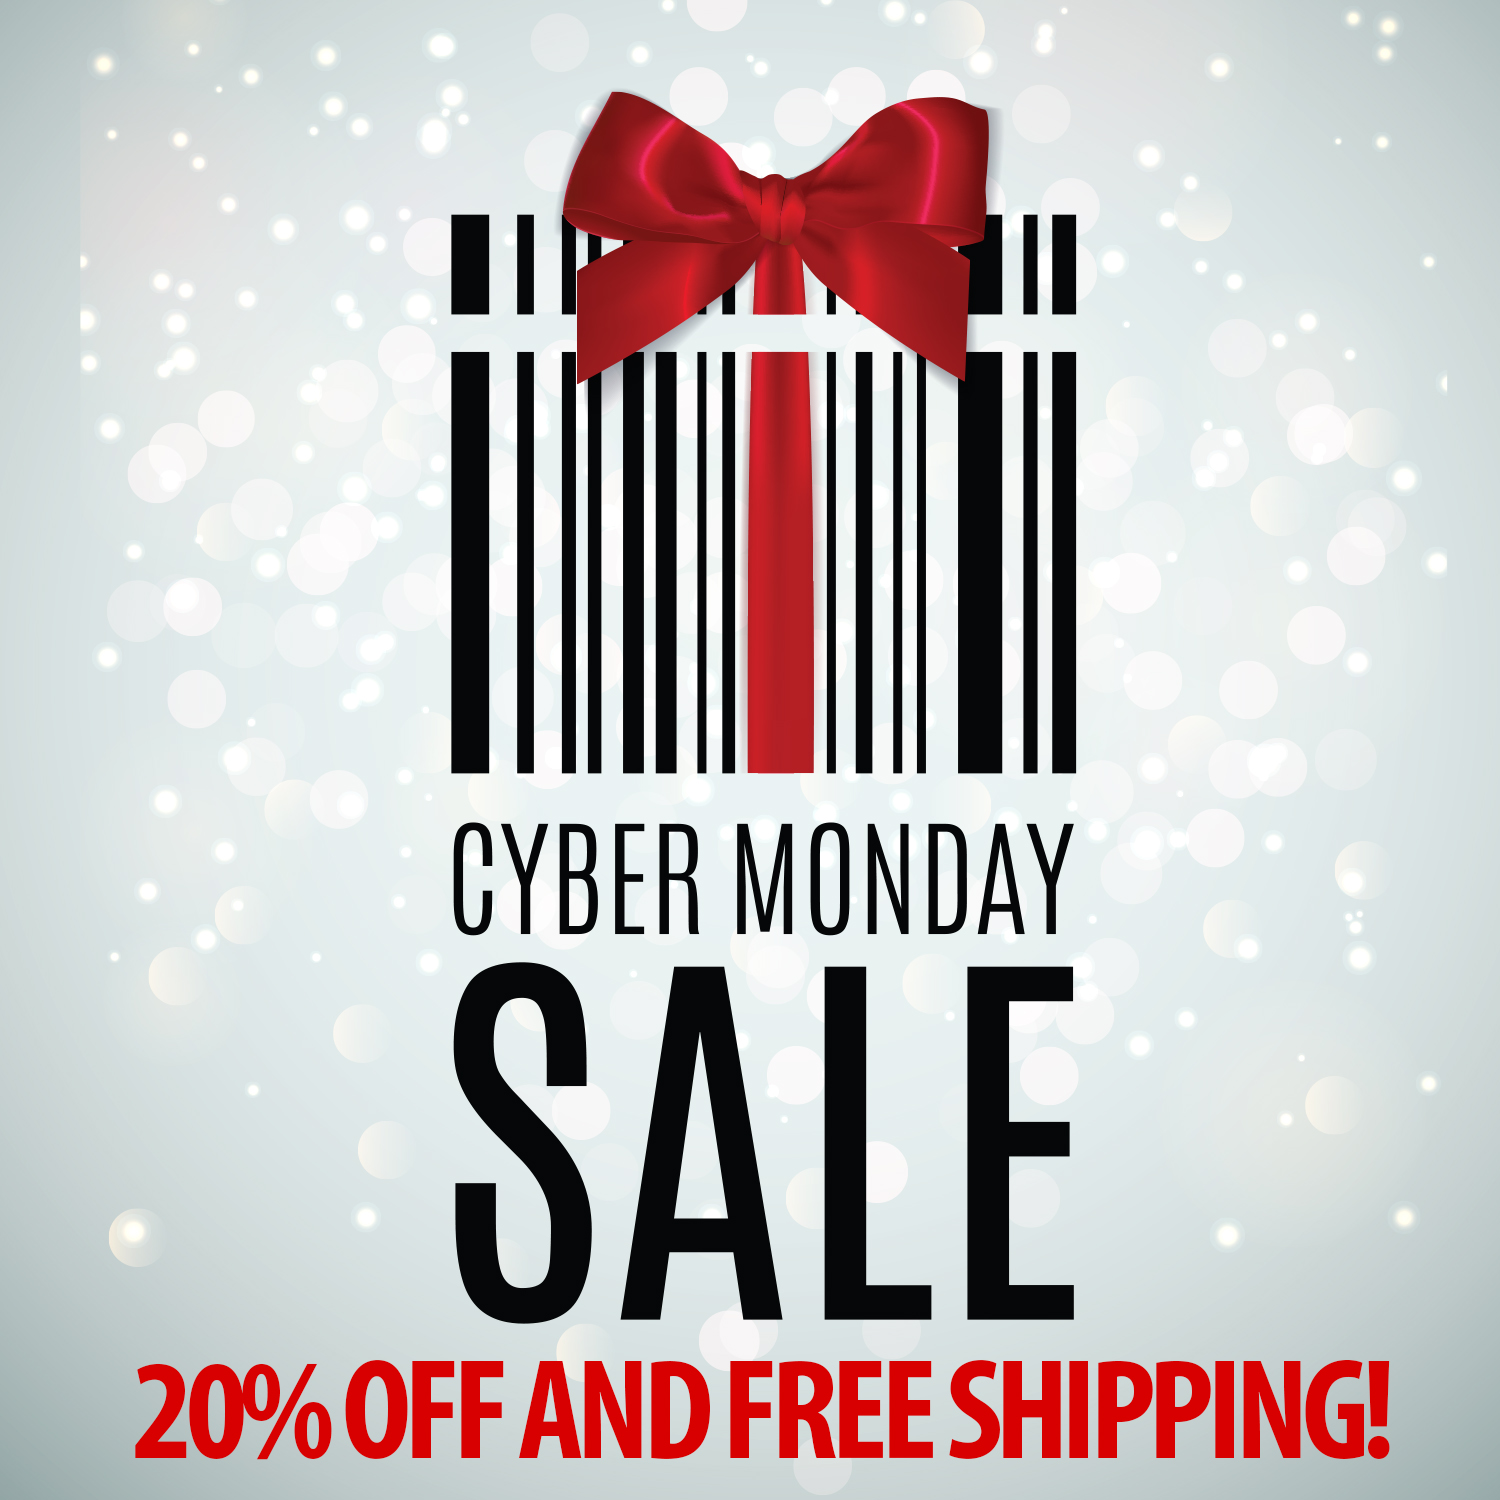 cyber monday sale 20% off and free shipping